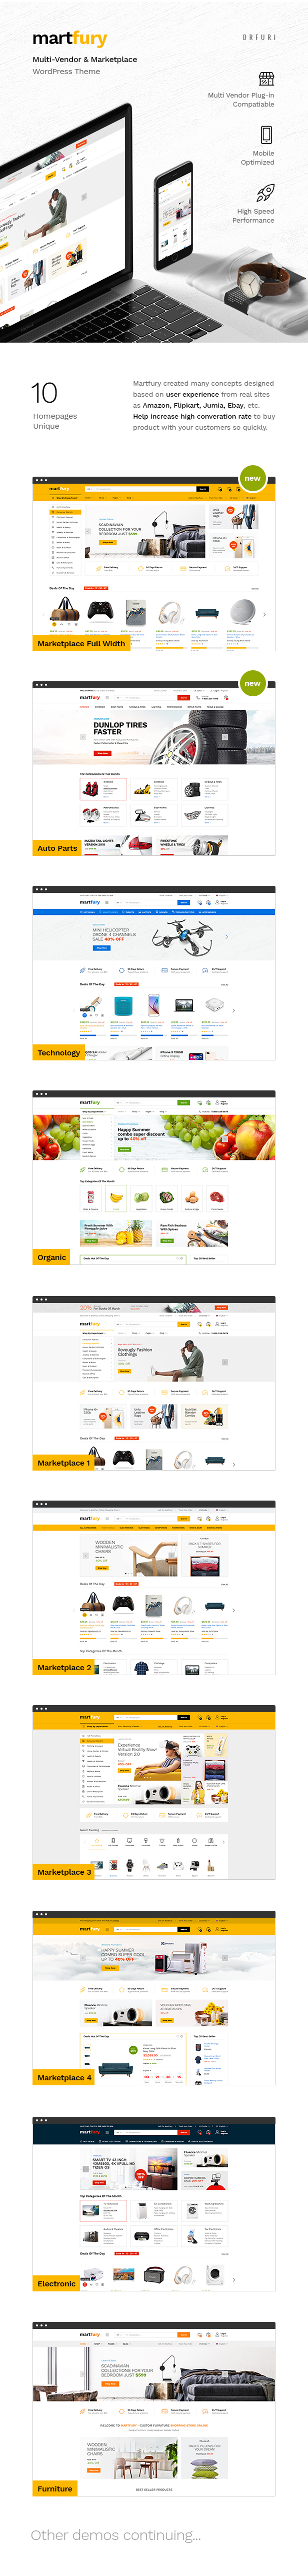 martfury wp 010 - Martfury - WooCommerce Marketplace WordPress Theme